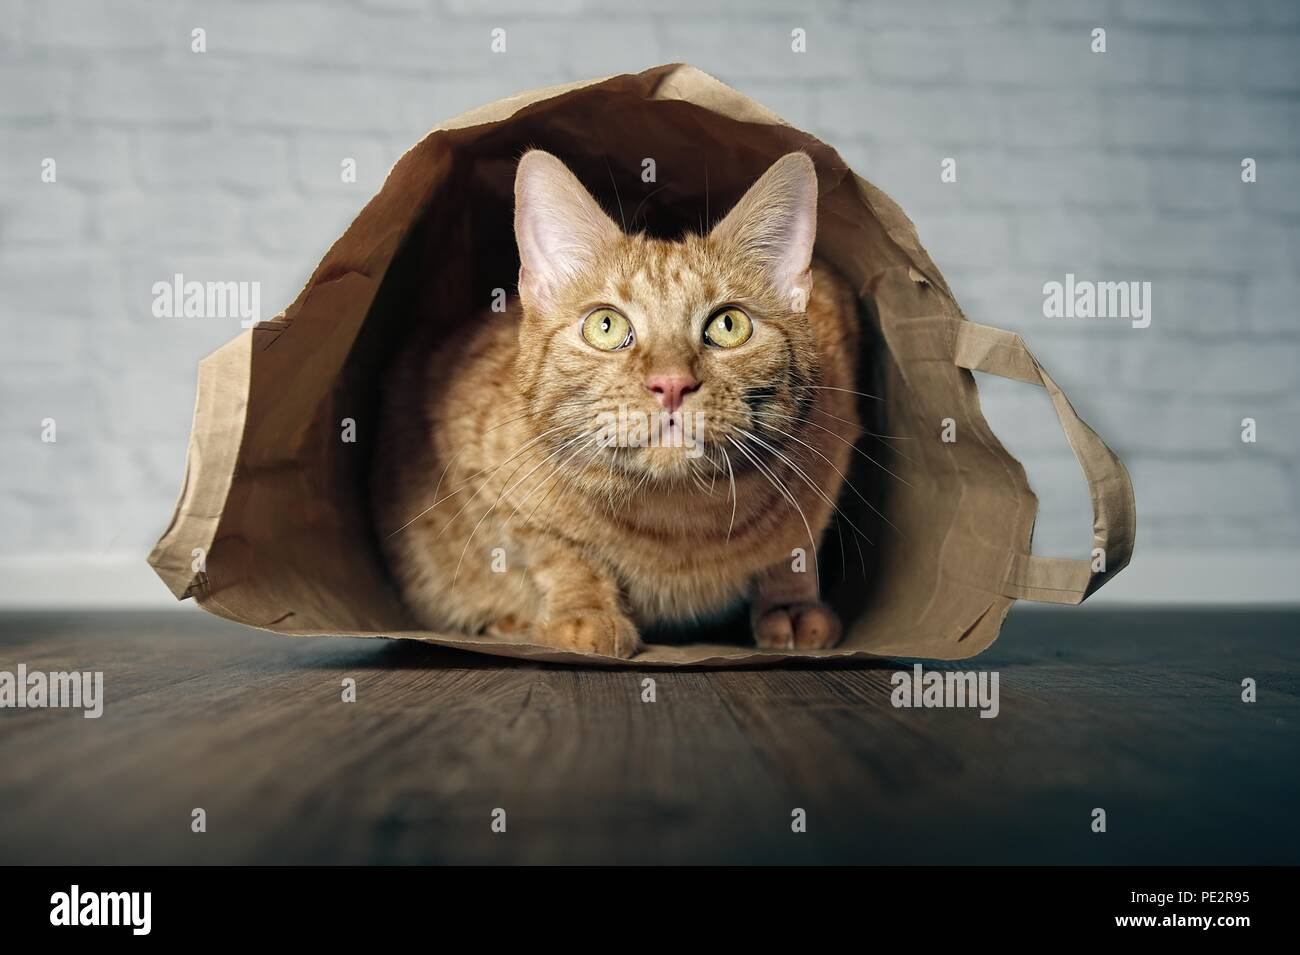 Cute ginger cat lying in a paper bag and looking curious upwards. - Stock Image